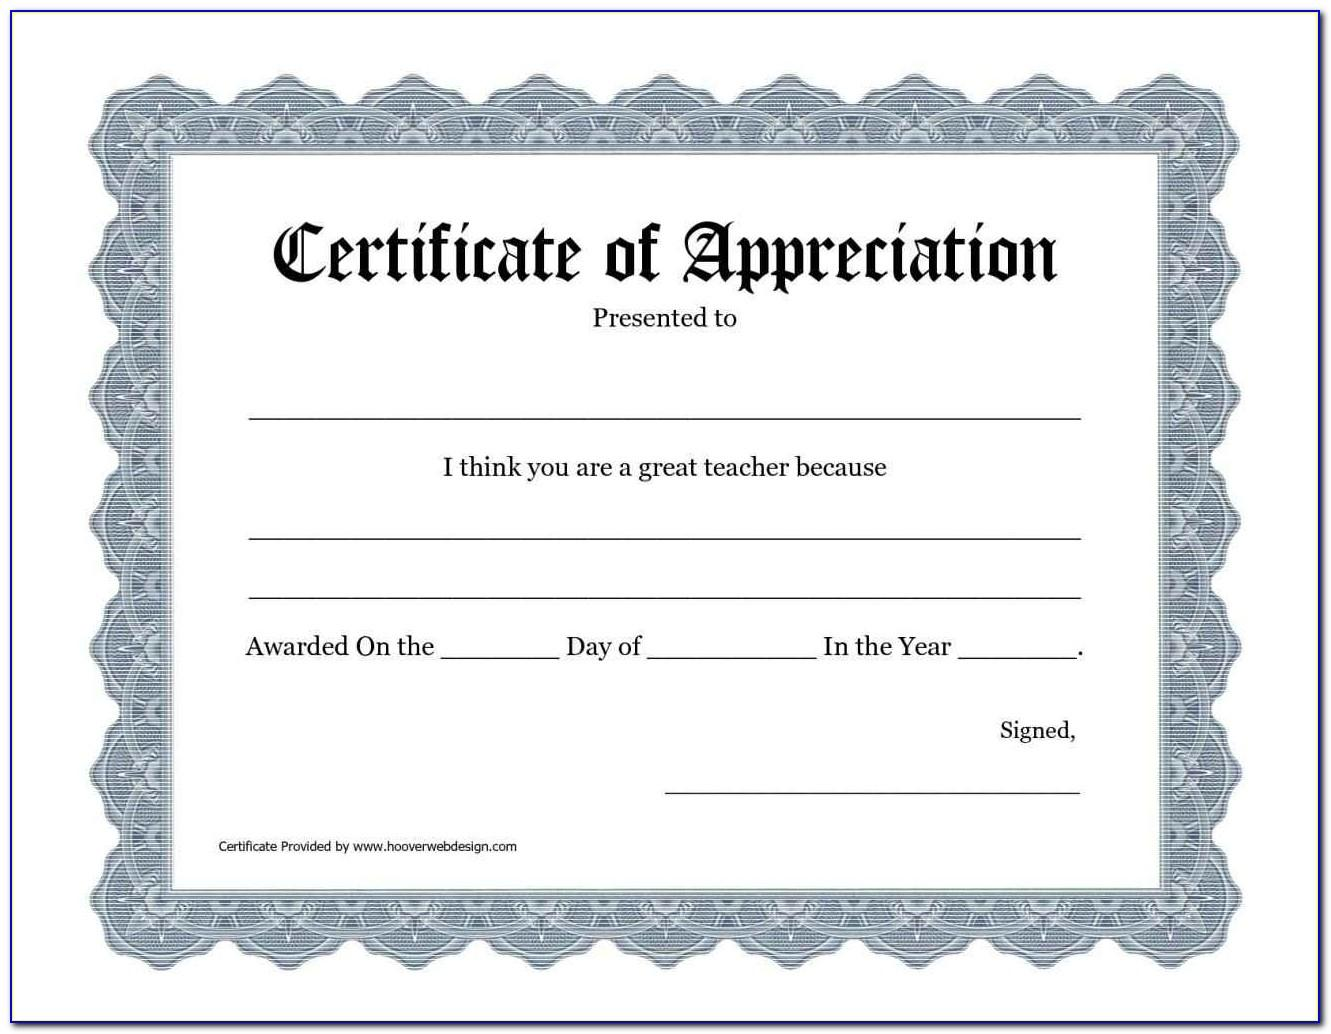 Templates For Certificates Of Appreciation Free